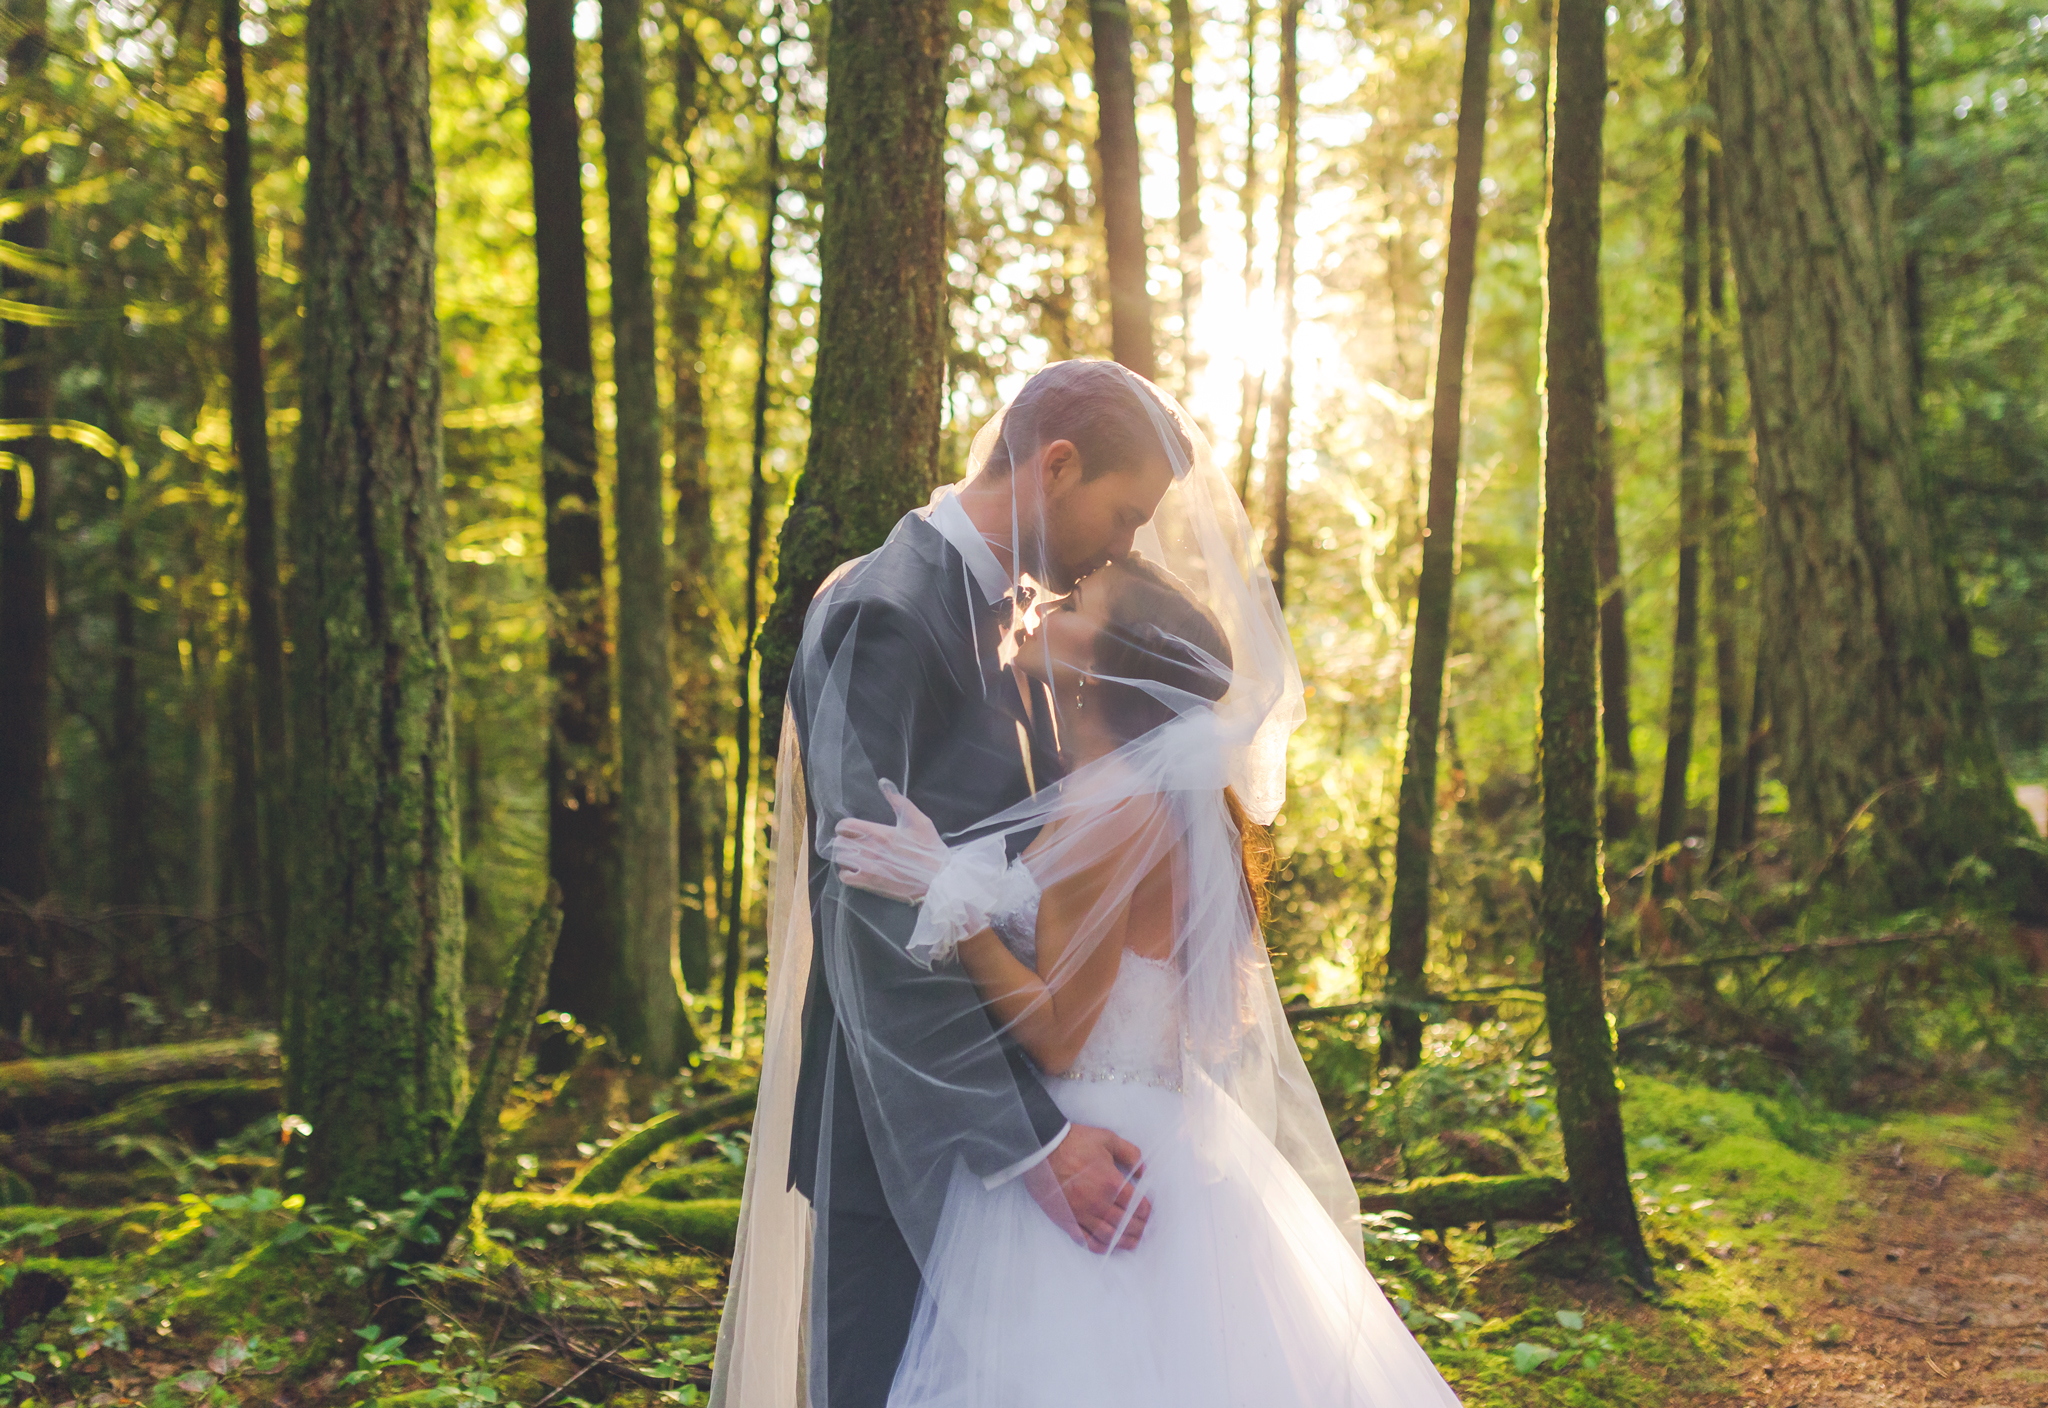 huffington post photographer of the month, jennifer picard photography, vancouver wedding photographer